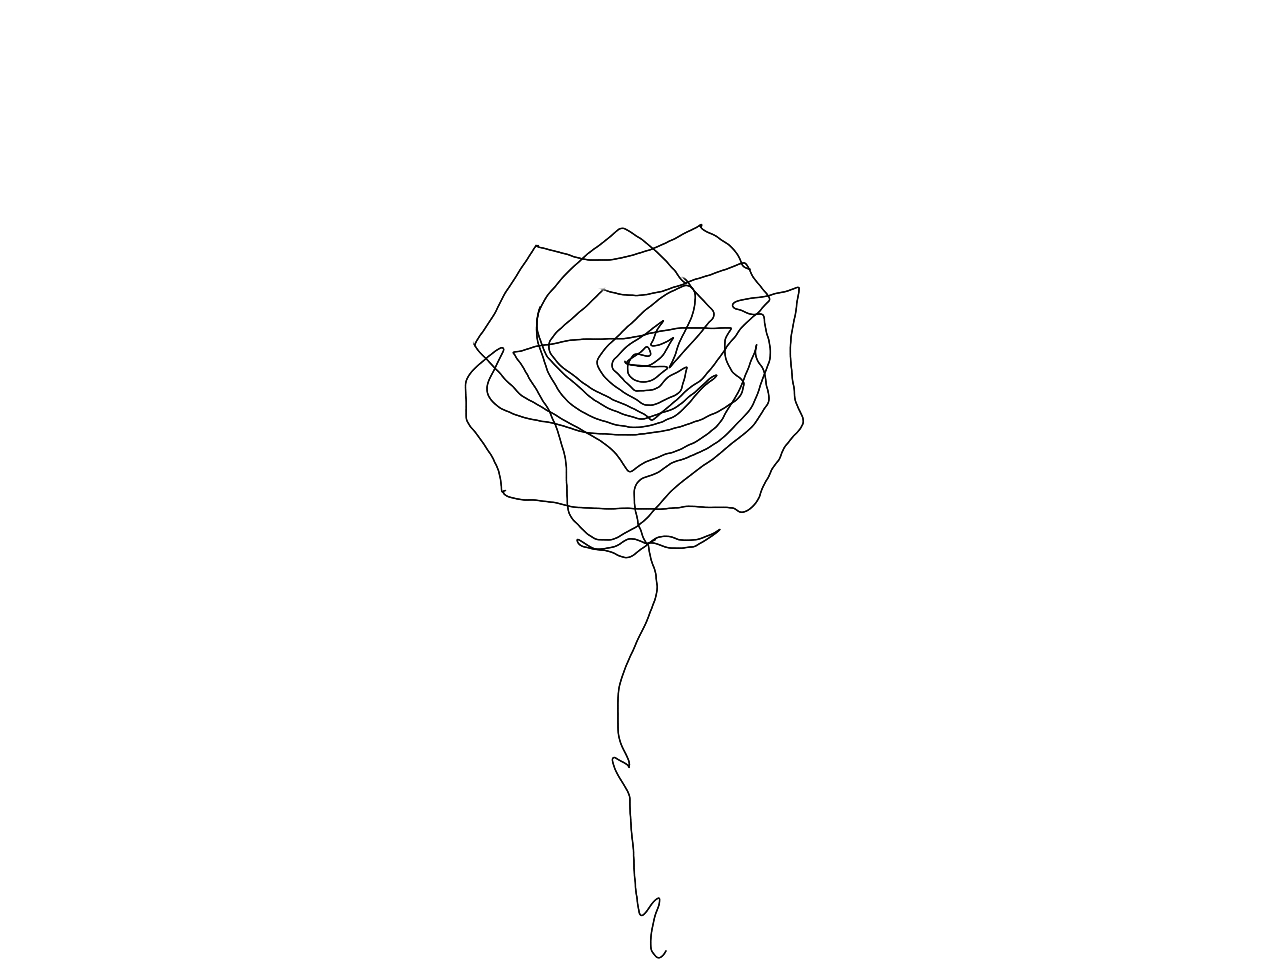 Single line chat art : One line rose by aimosan on deviantart